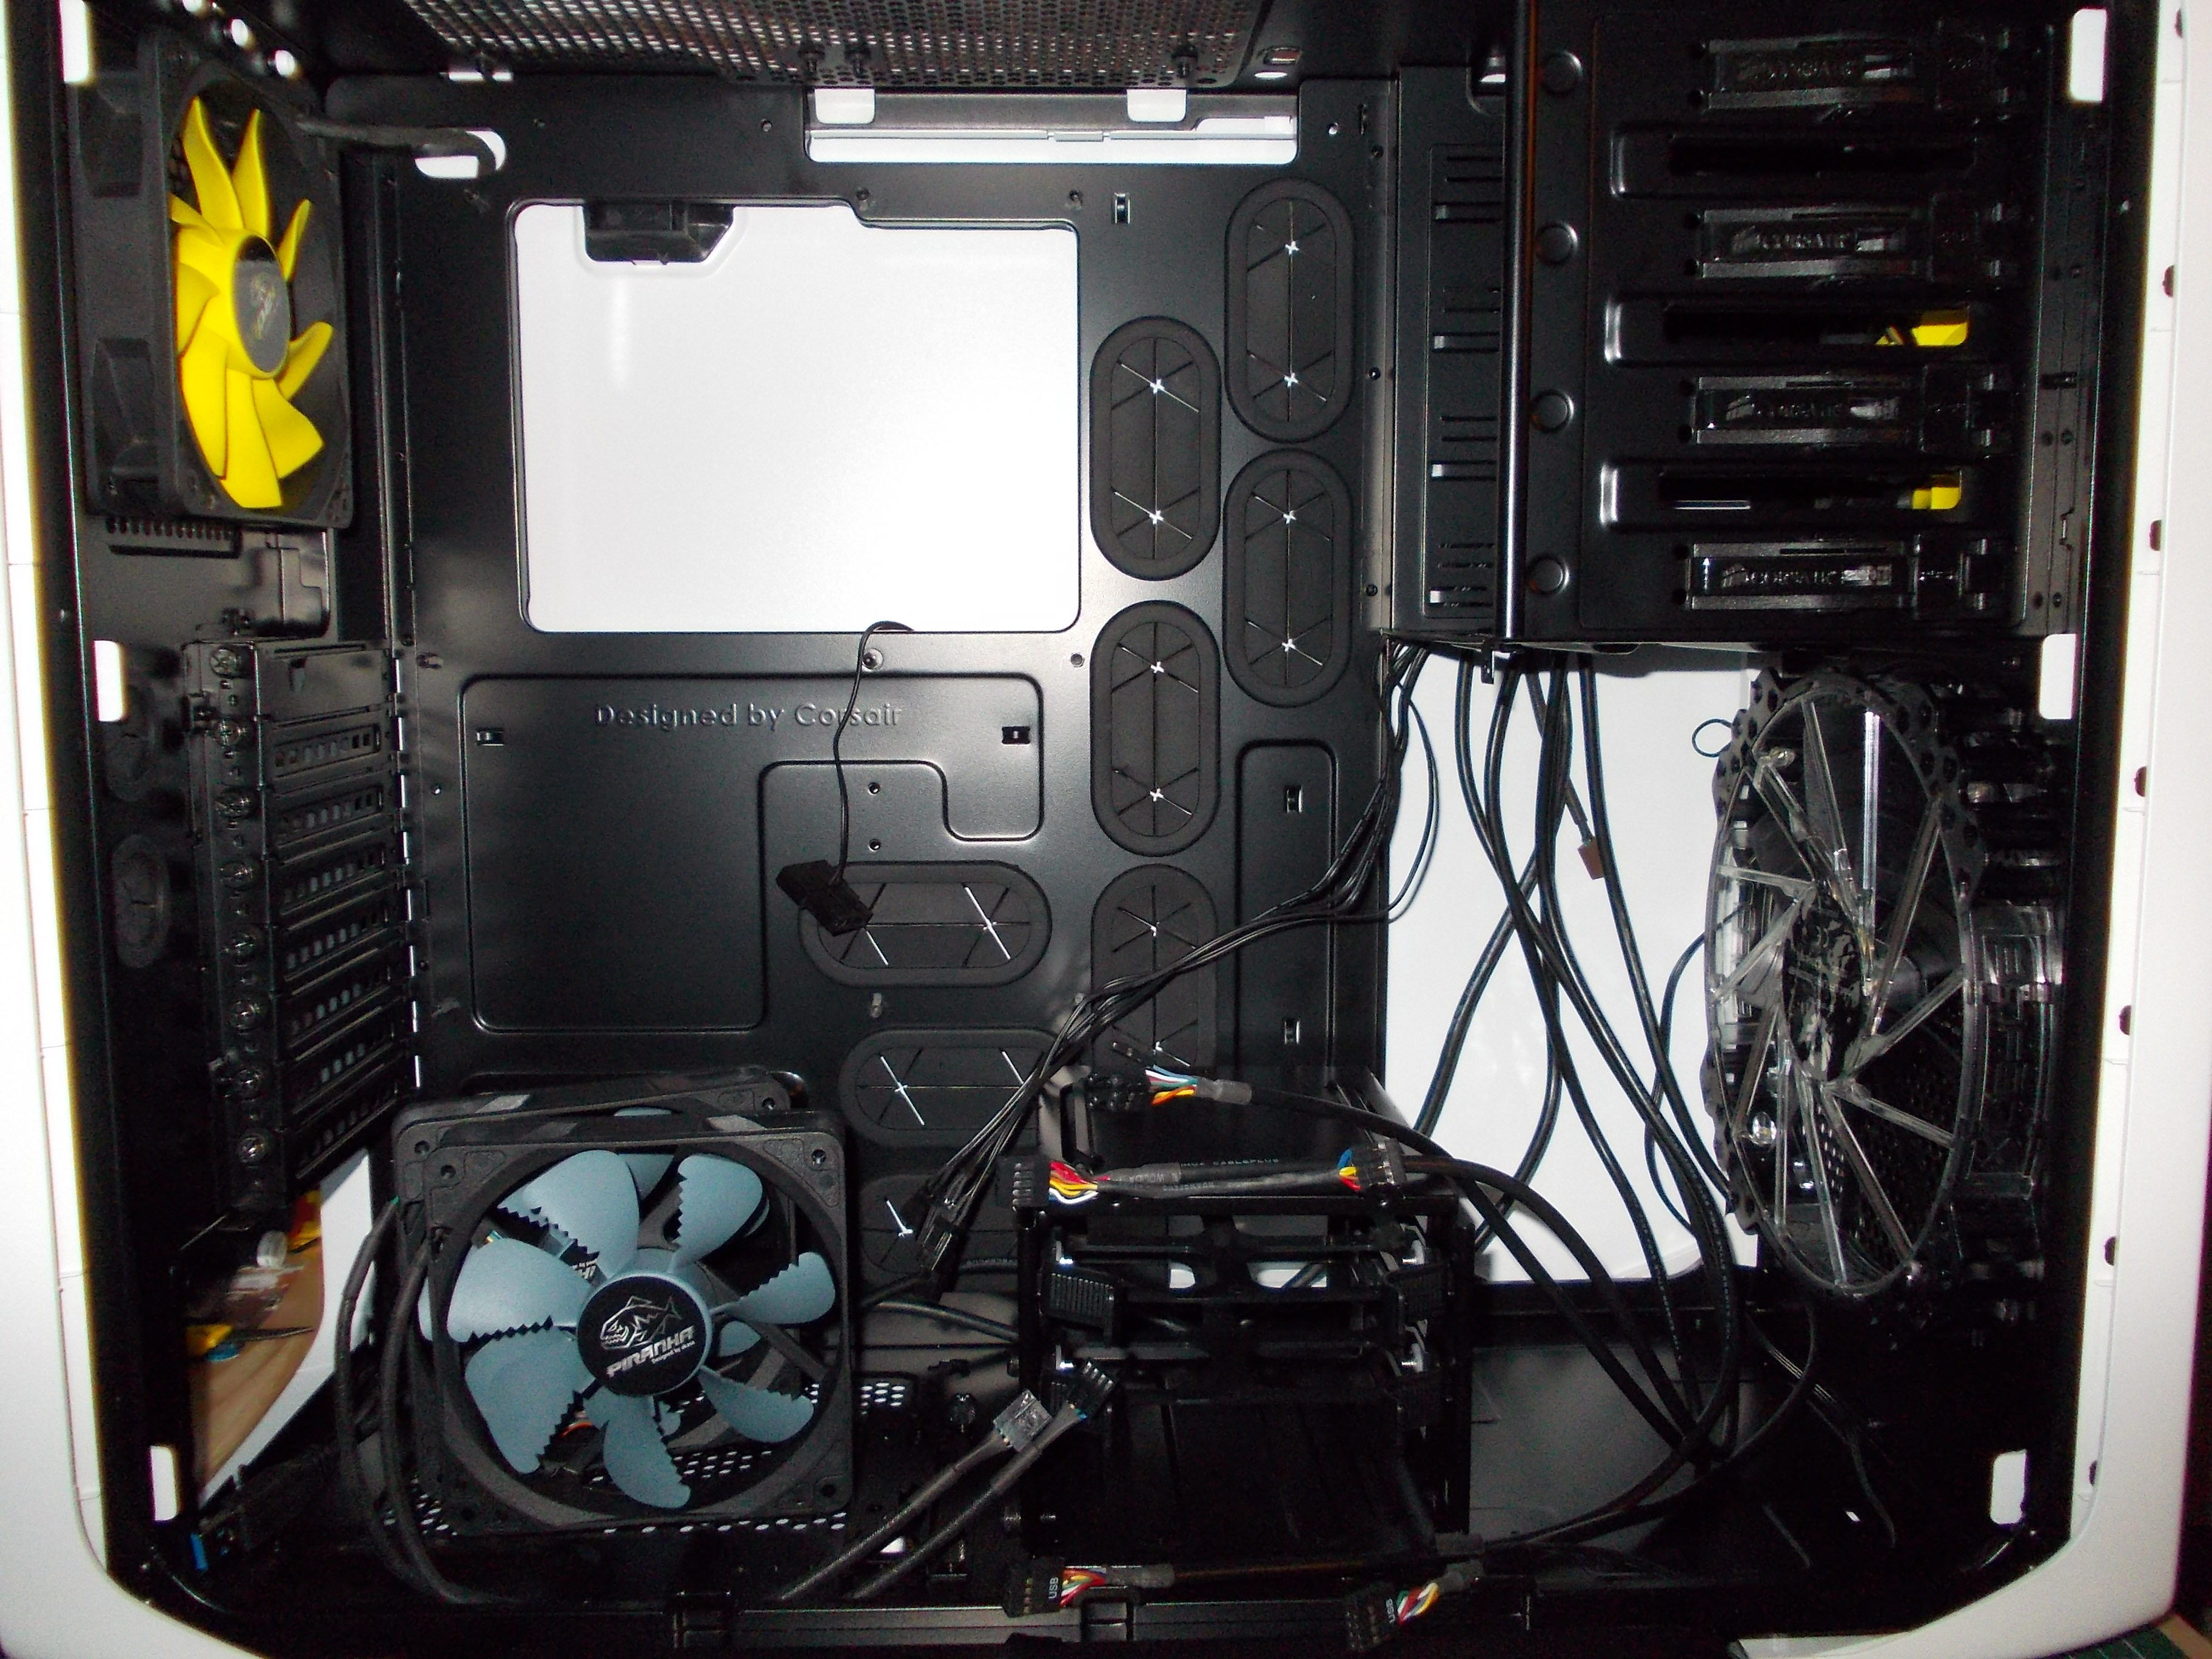 Internals. Just installed the Second Akasa Viper 120mm case fan, in the rear panel. Gong for 3 different fans and colours as this choice is performance over colour choice.